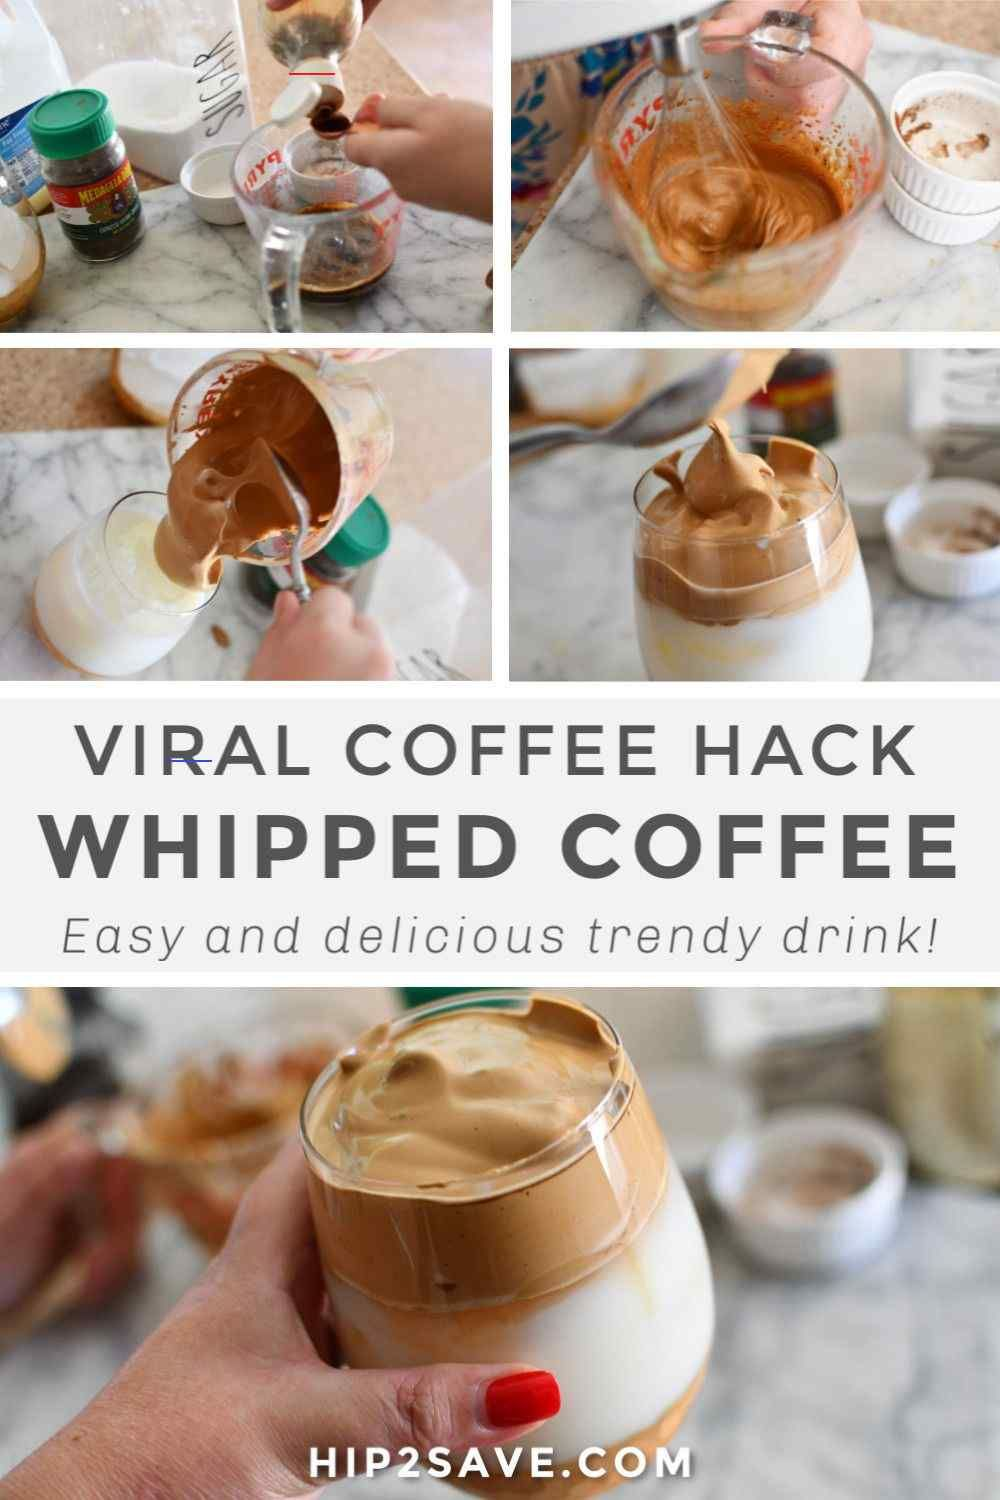 Here's the Viral Whipped Instant Coffee Hack Everyone's